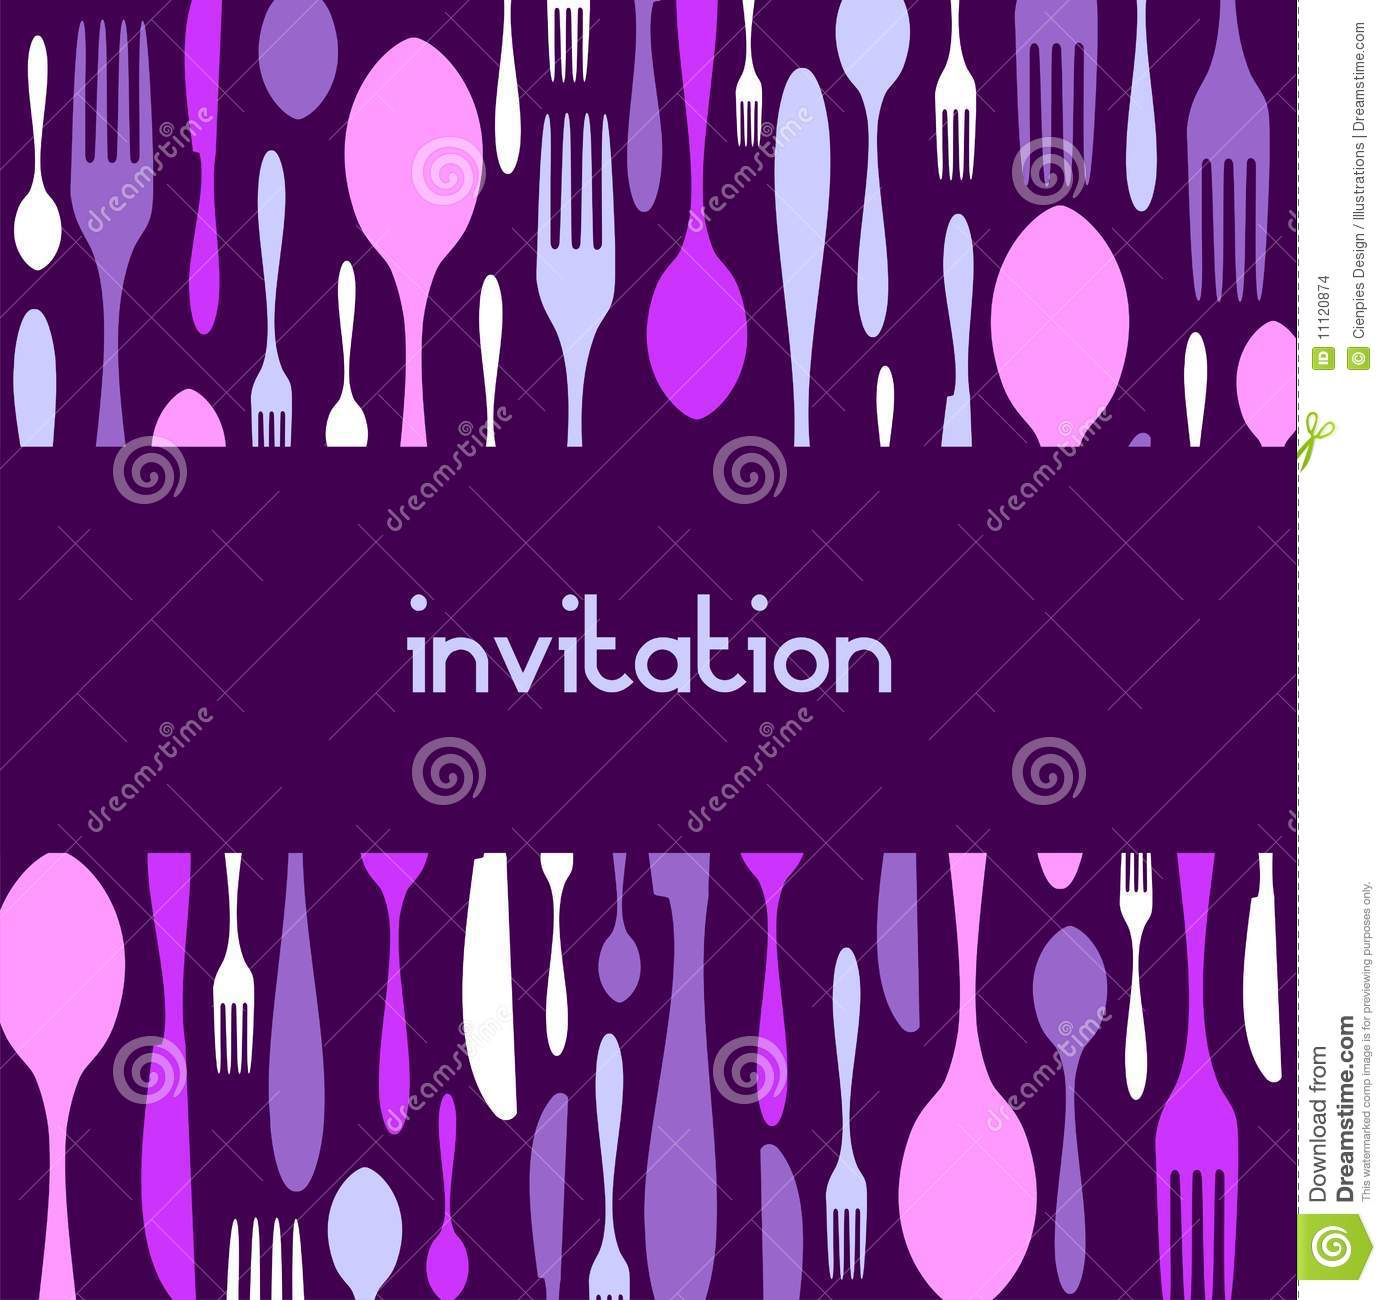 Cutlery Pattern Invitation Violet Background Stock Vector